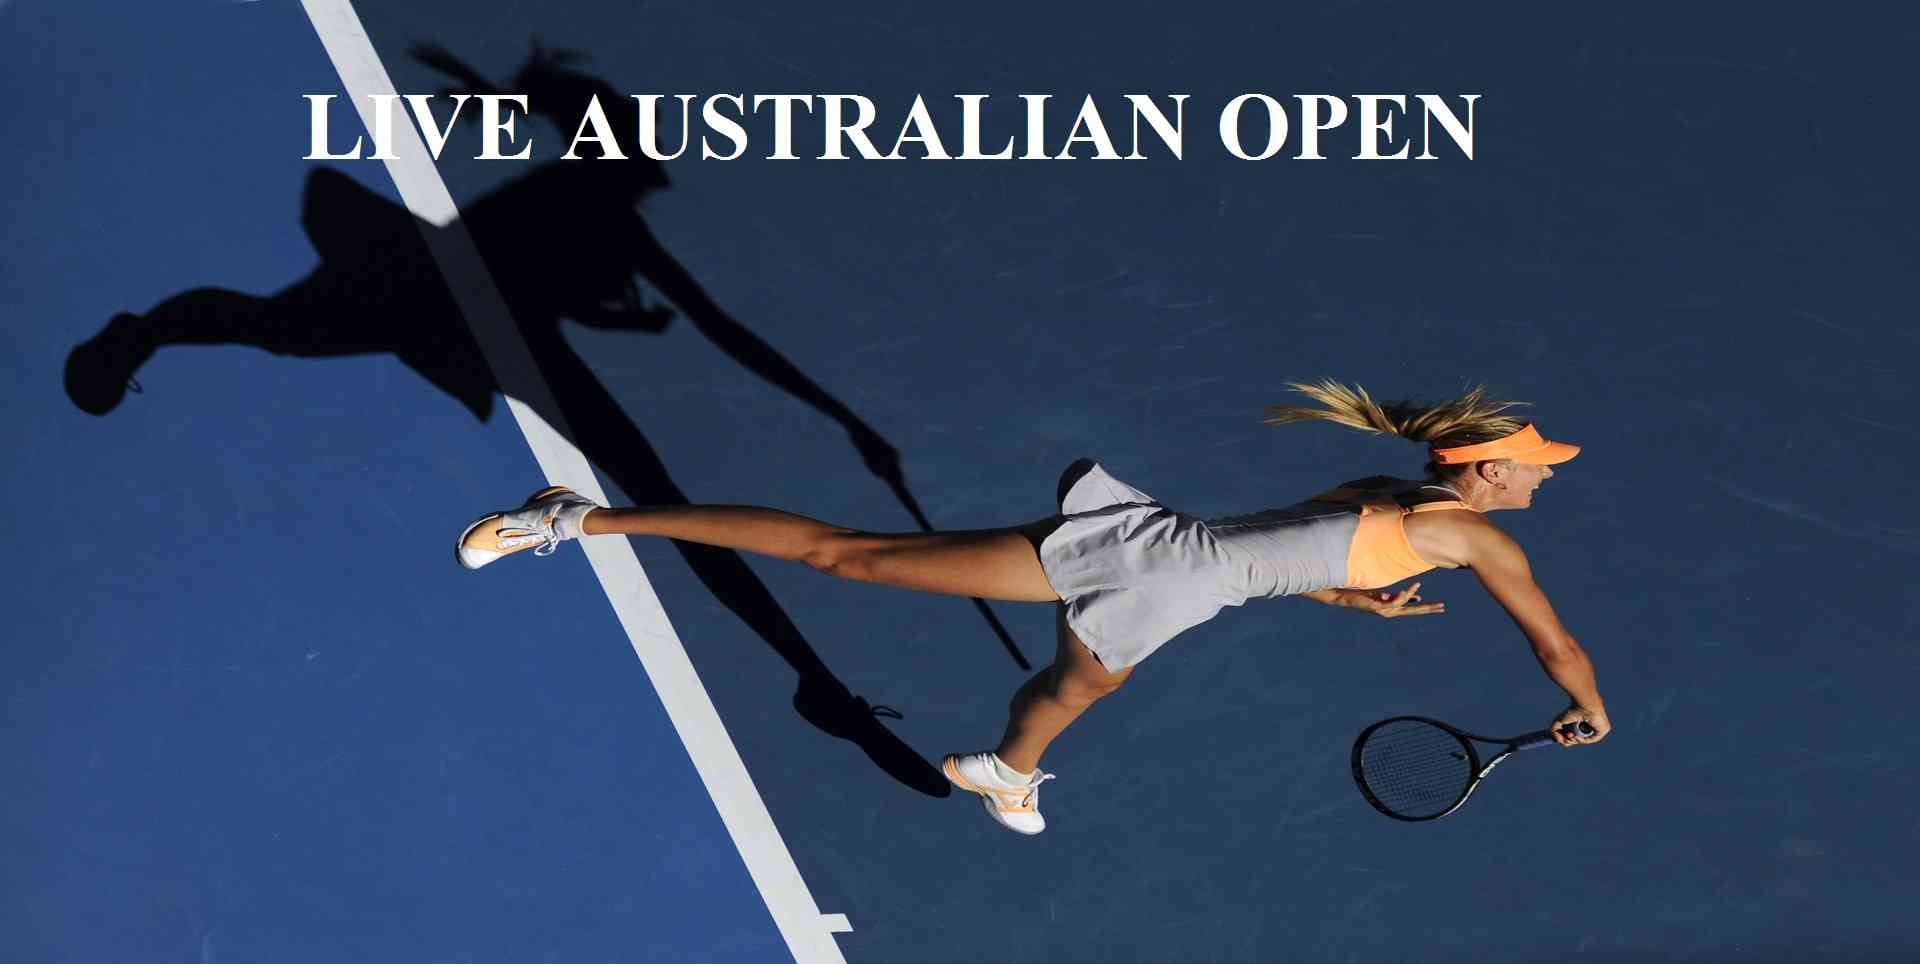 2019-australian-open-total-purse-increased